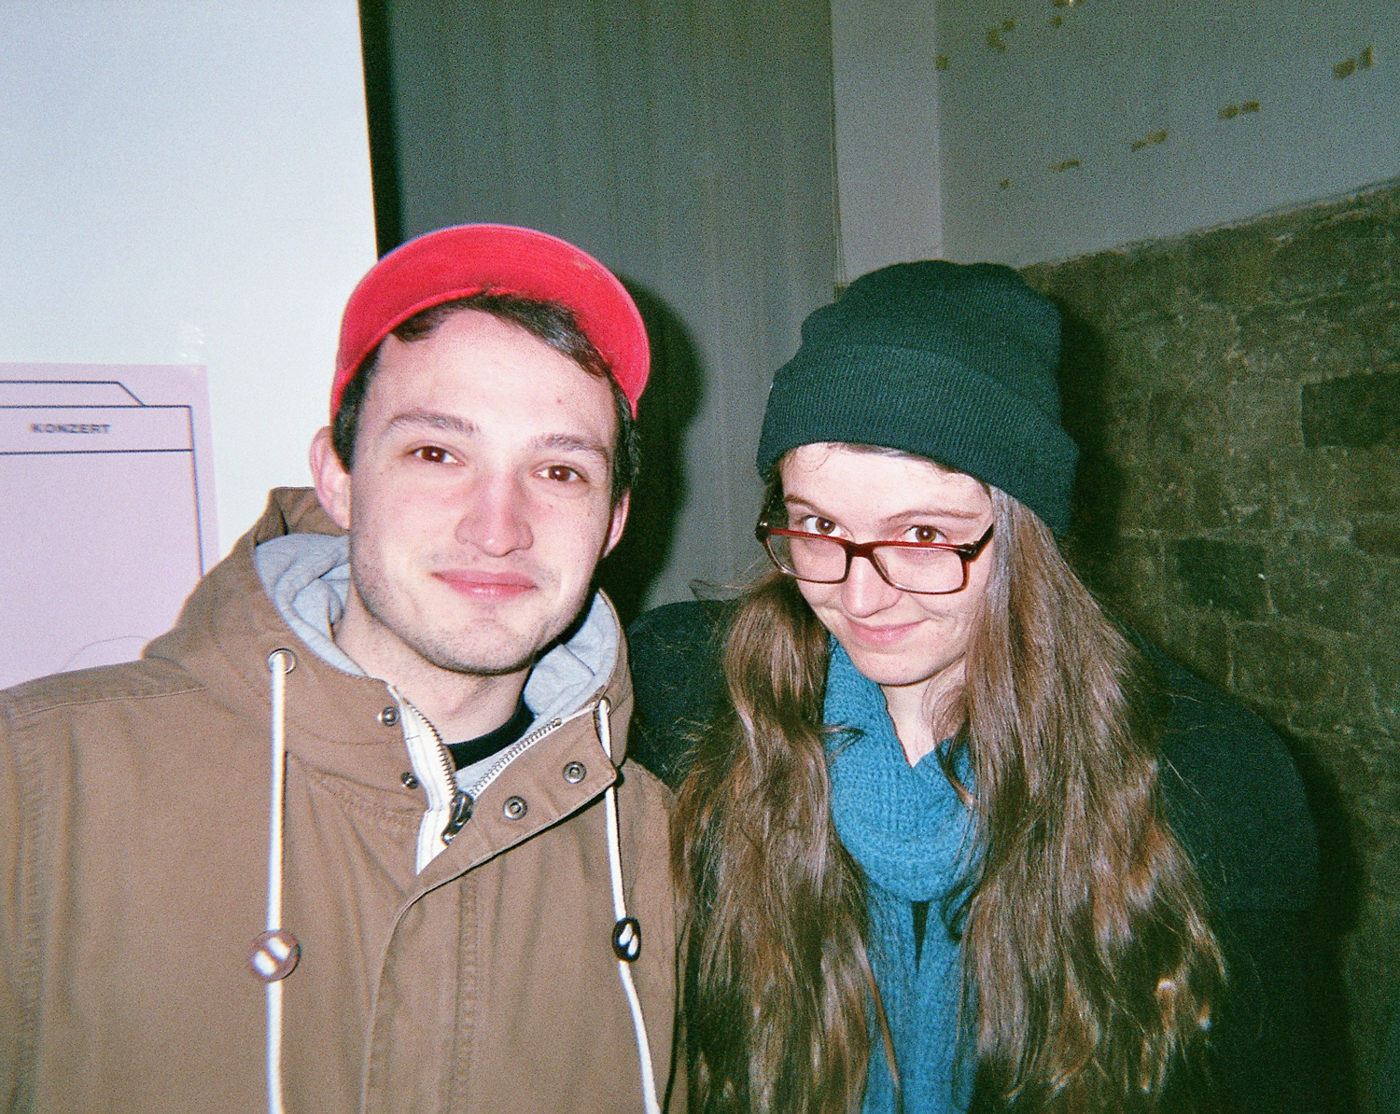 10 Years War and Peas – Jonathan Kunz and Elizabeth Pich